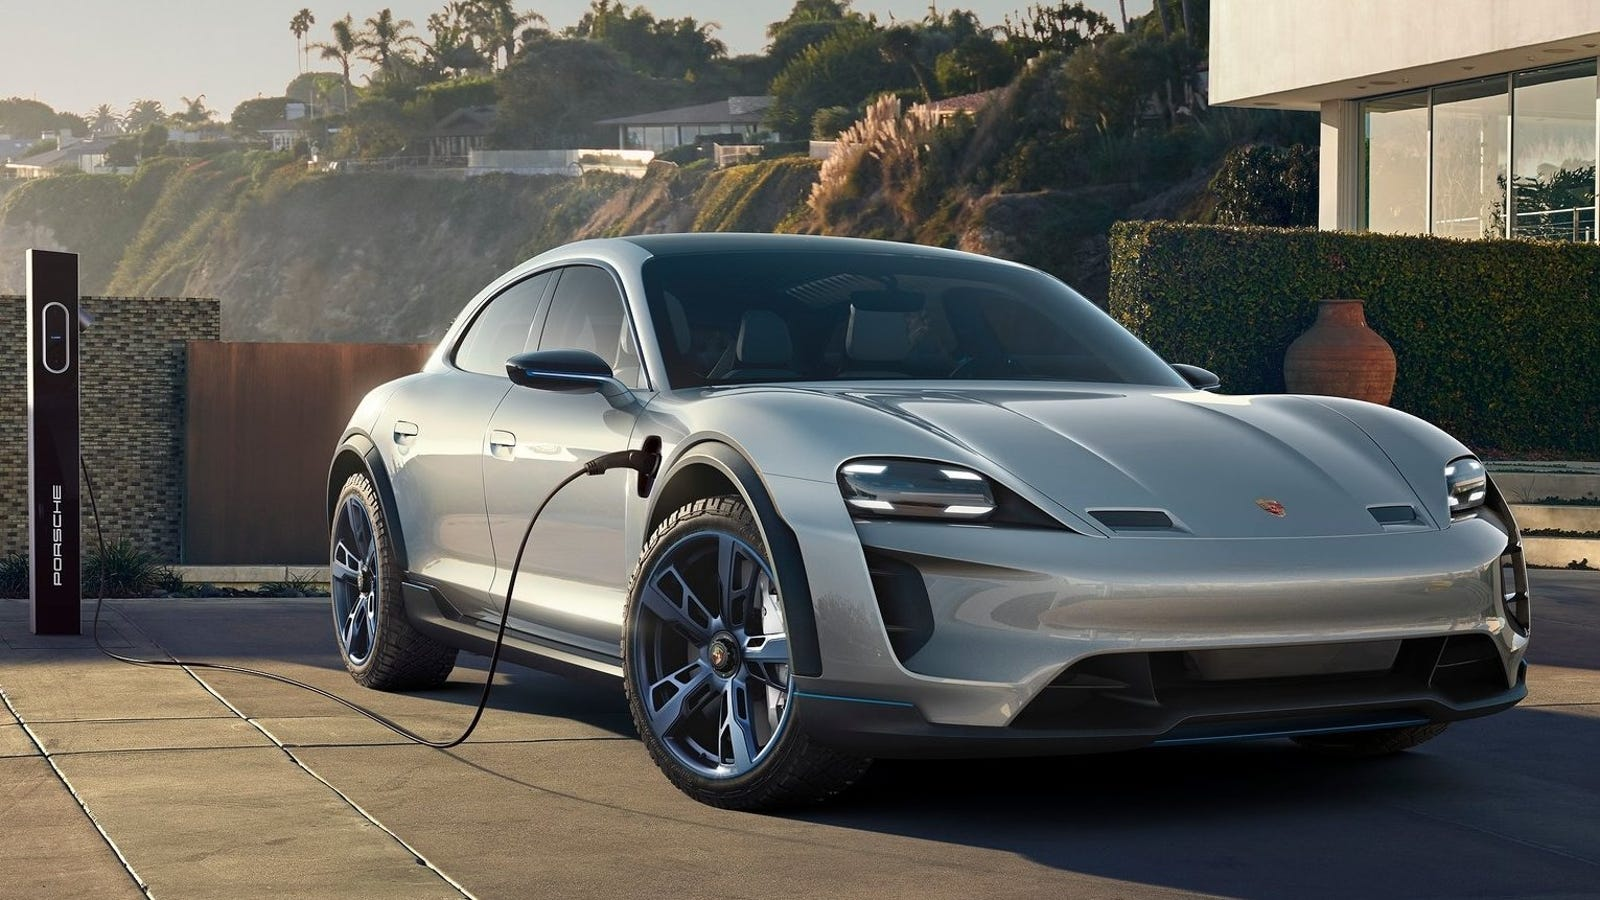 Porsche Will Launch 500 Electric Charging Stations Across The U.S. By The End Of 2019